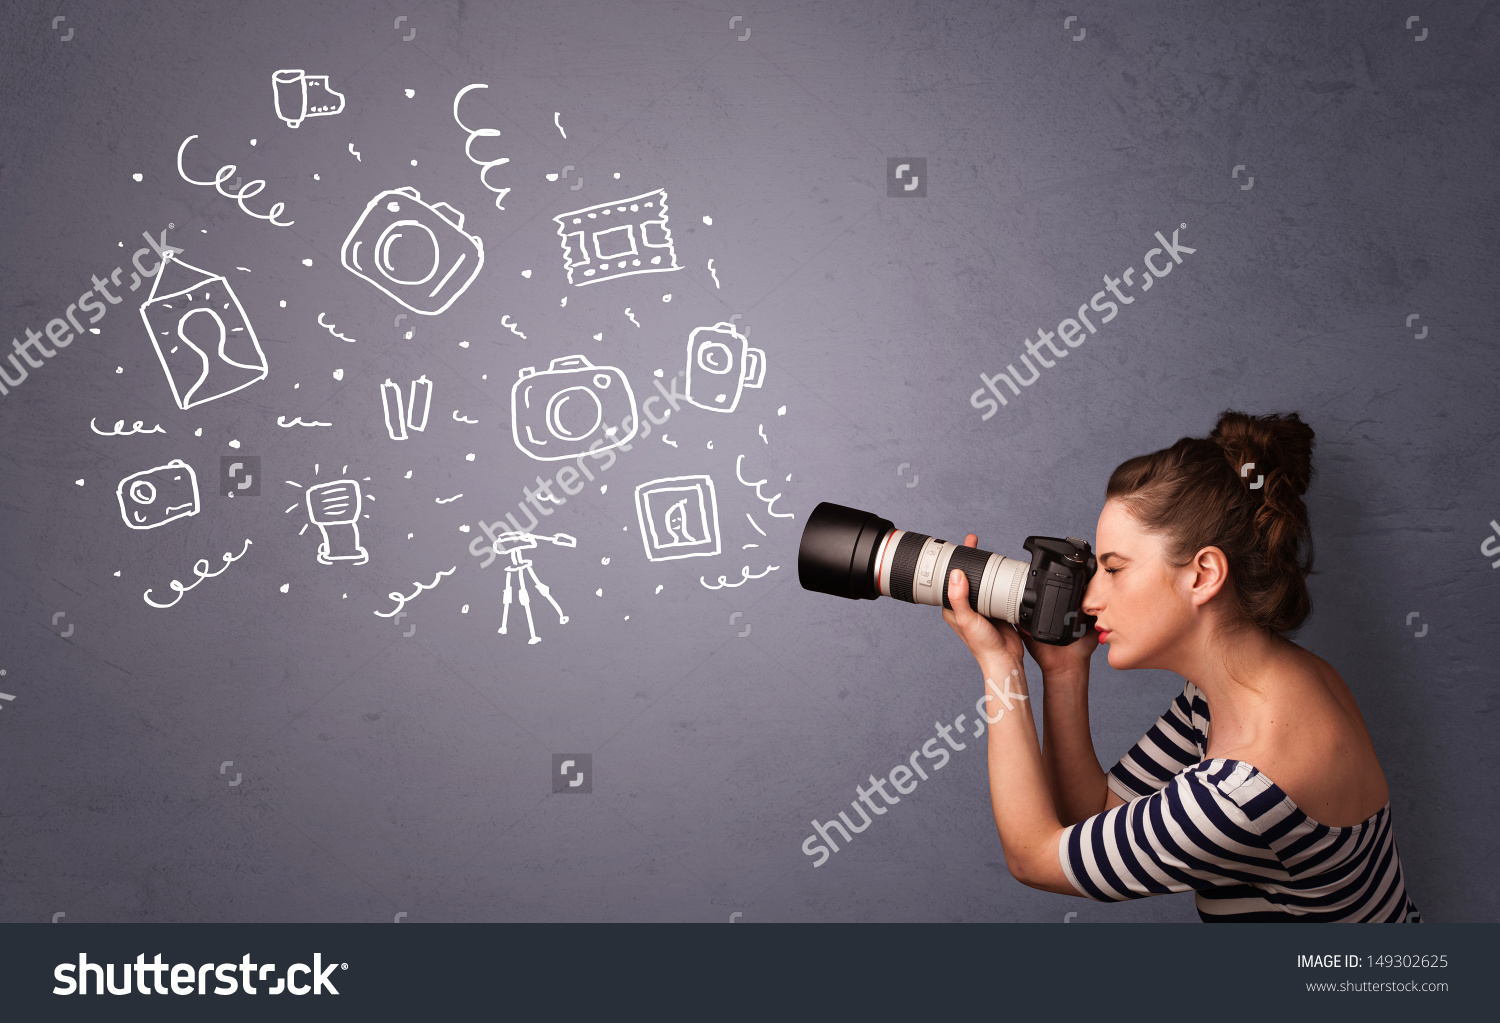 Shutterstock image with full watermark